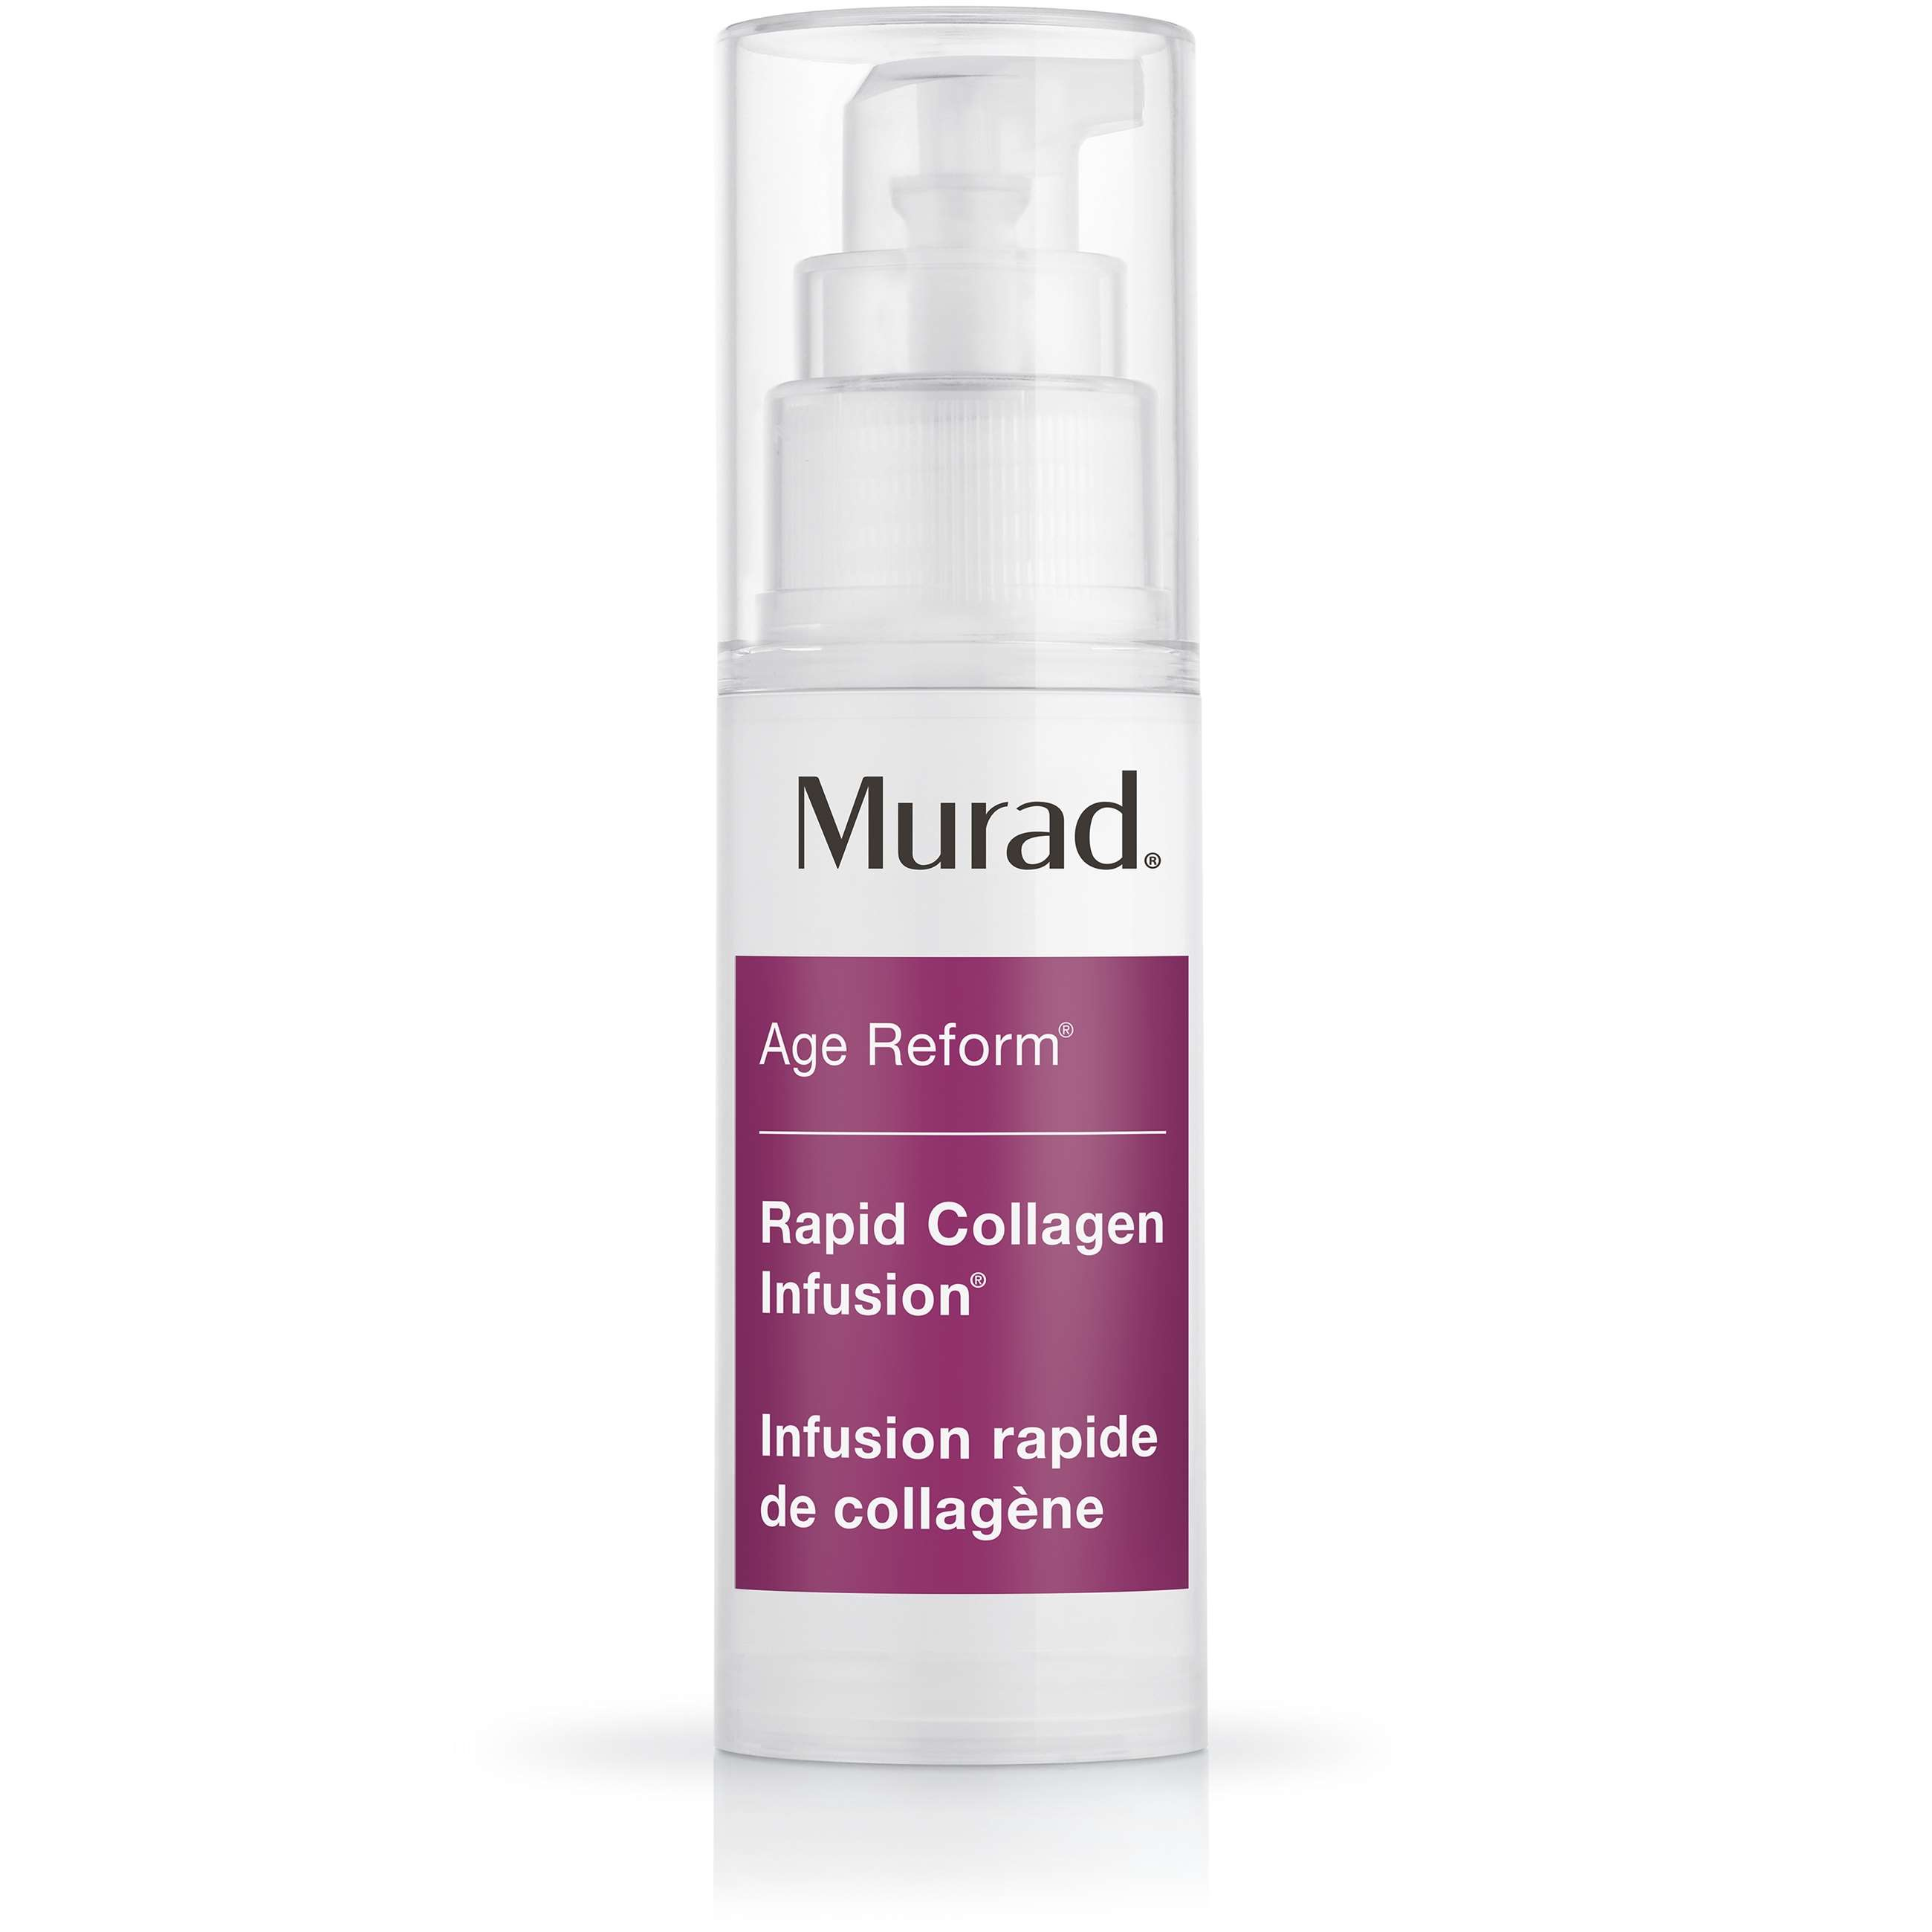 age reform rapid collagen infusion 30 ml